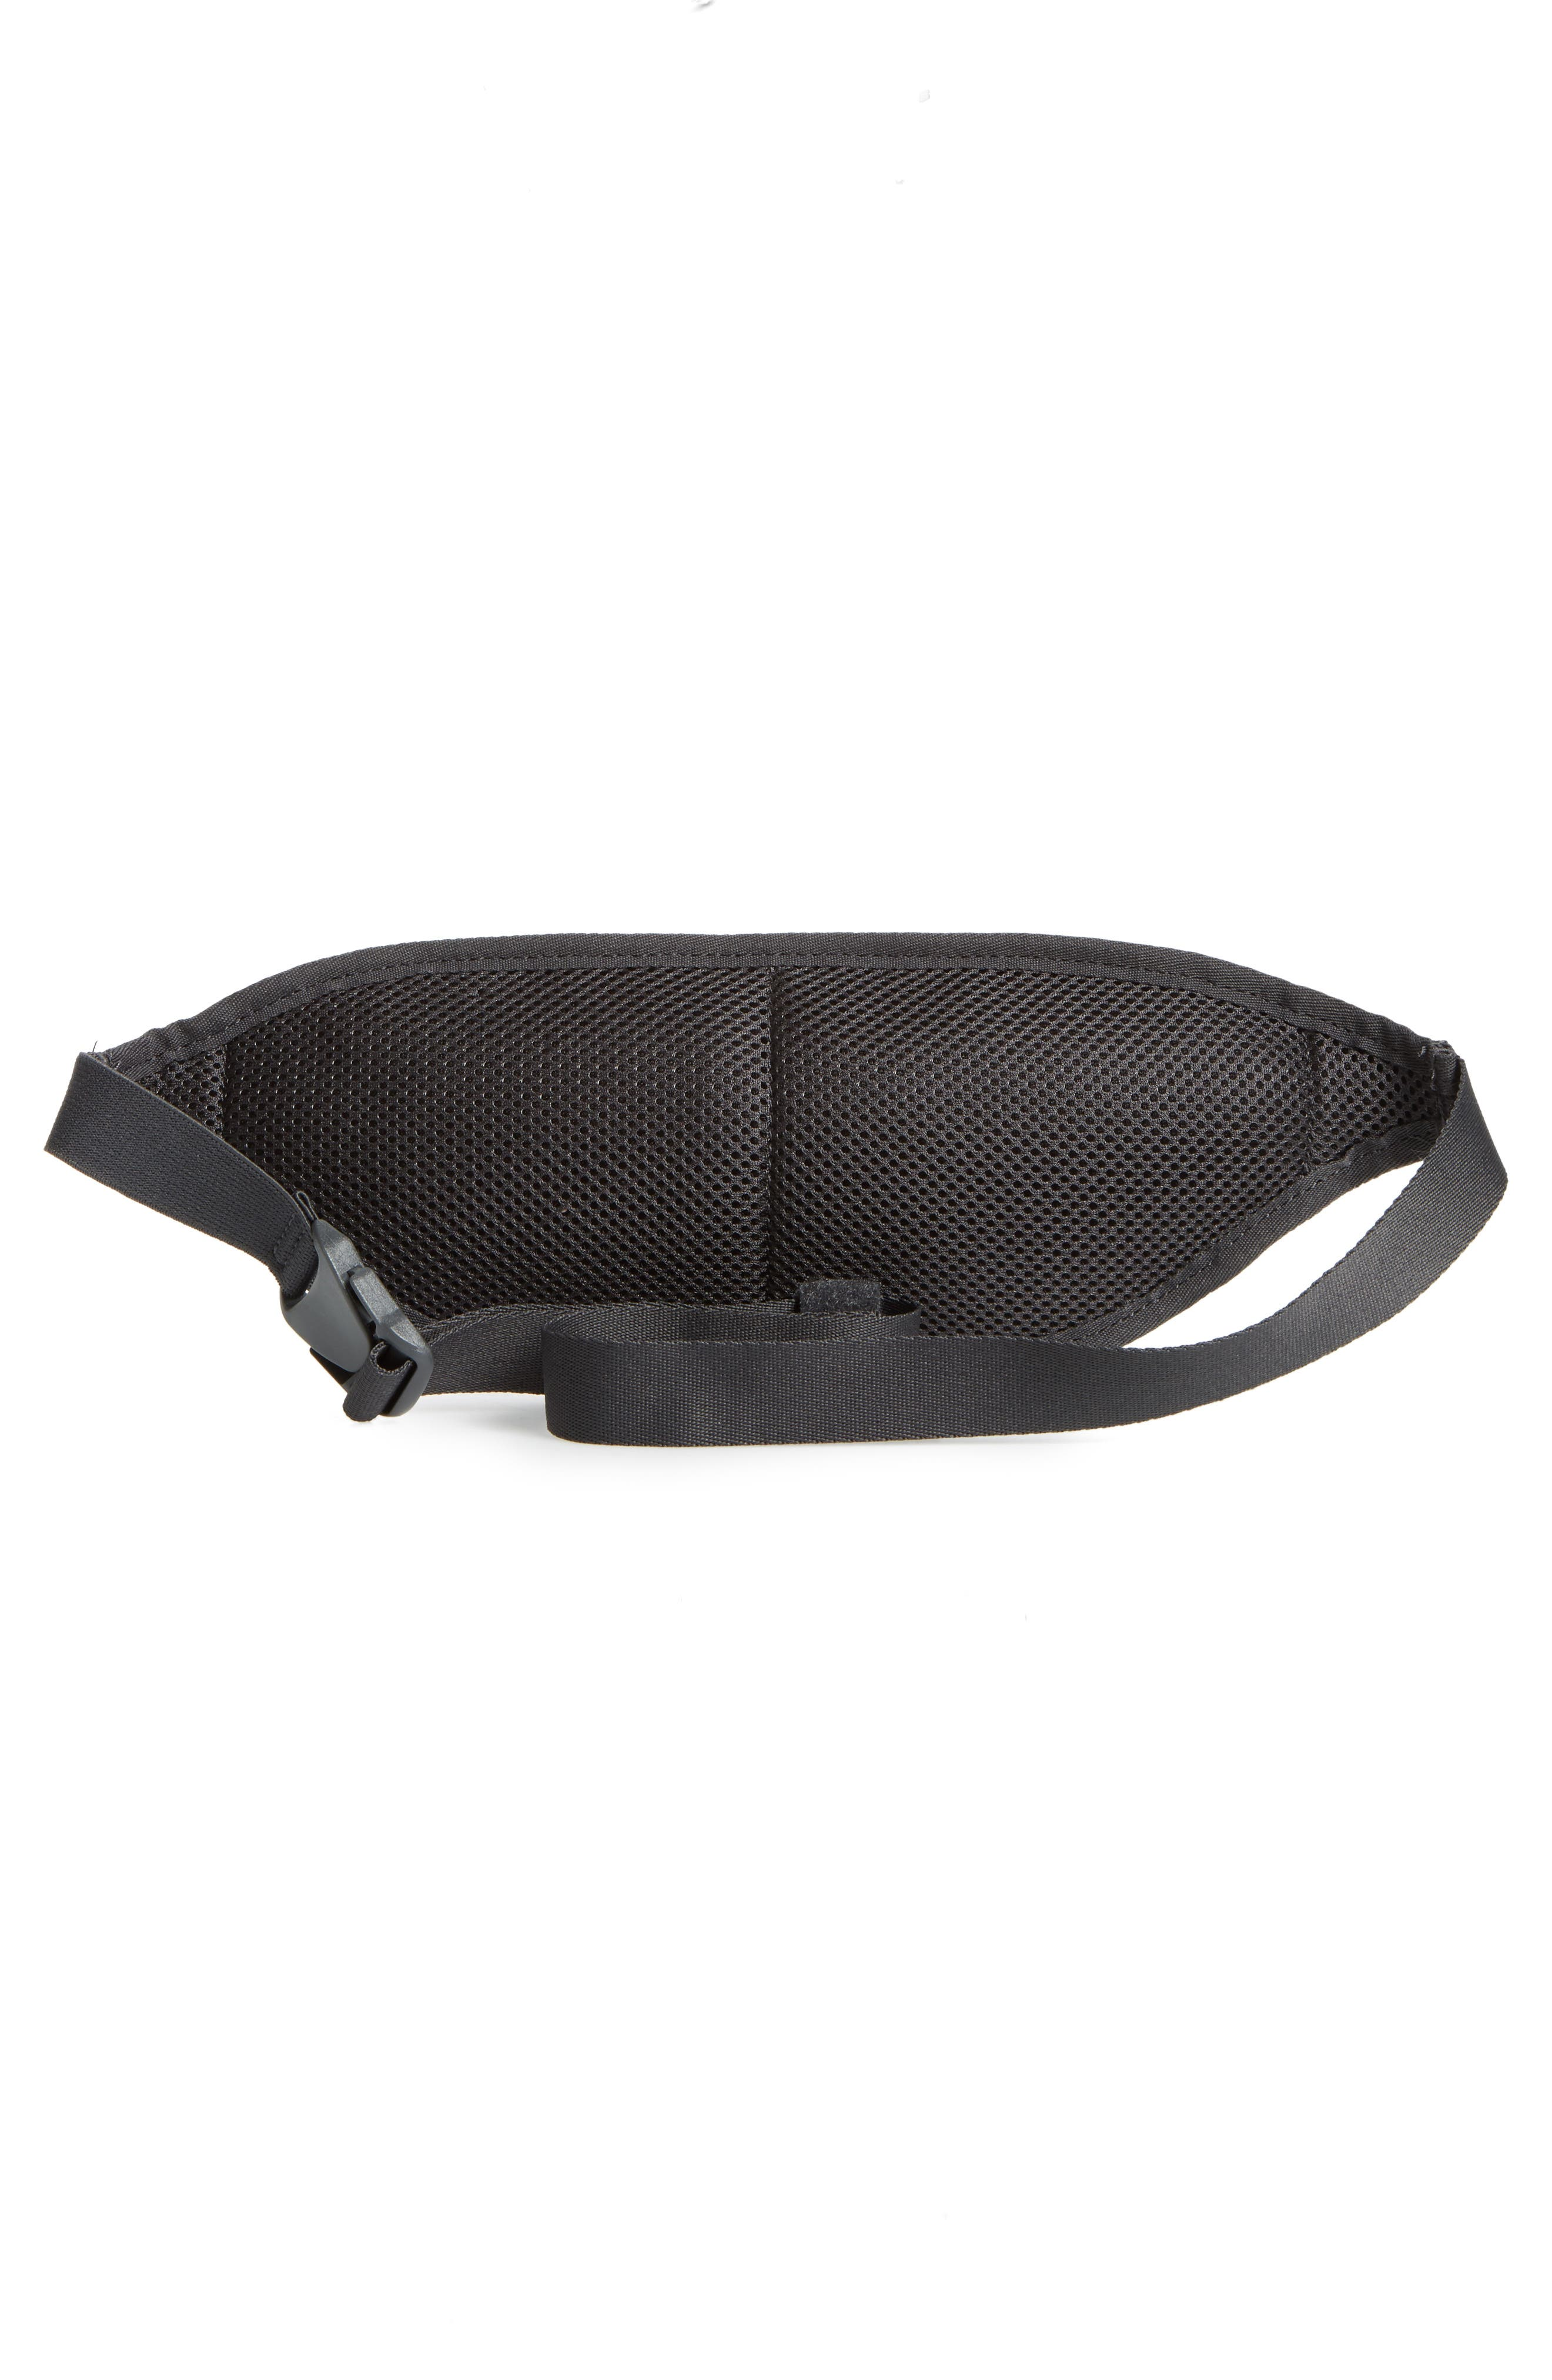 Large Capacity Hip Pack,                             Alternate thumbnail 2, color,                             Anthracite/ Black/ Silver